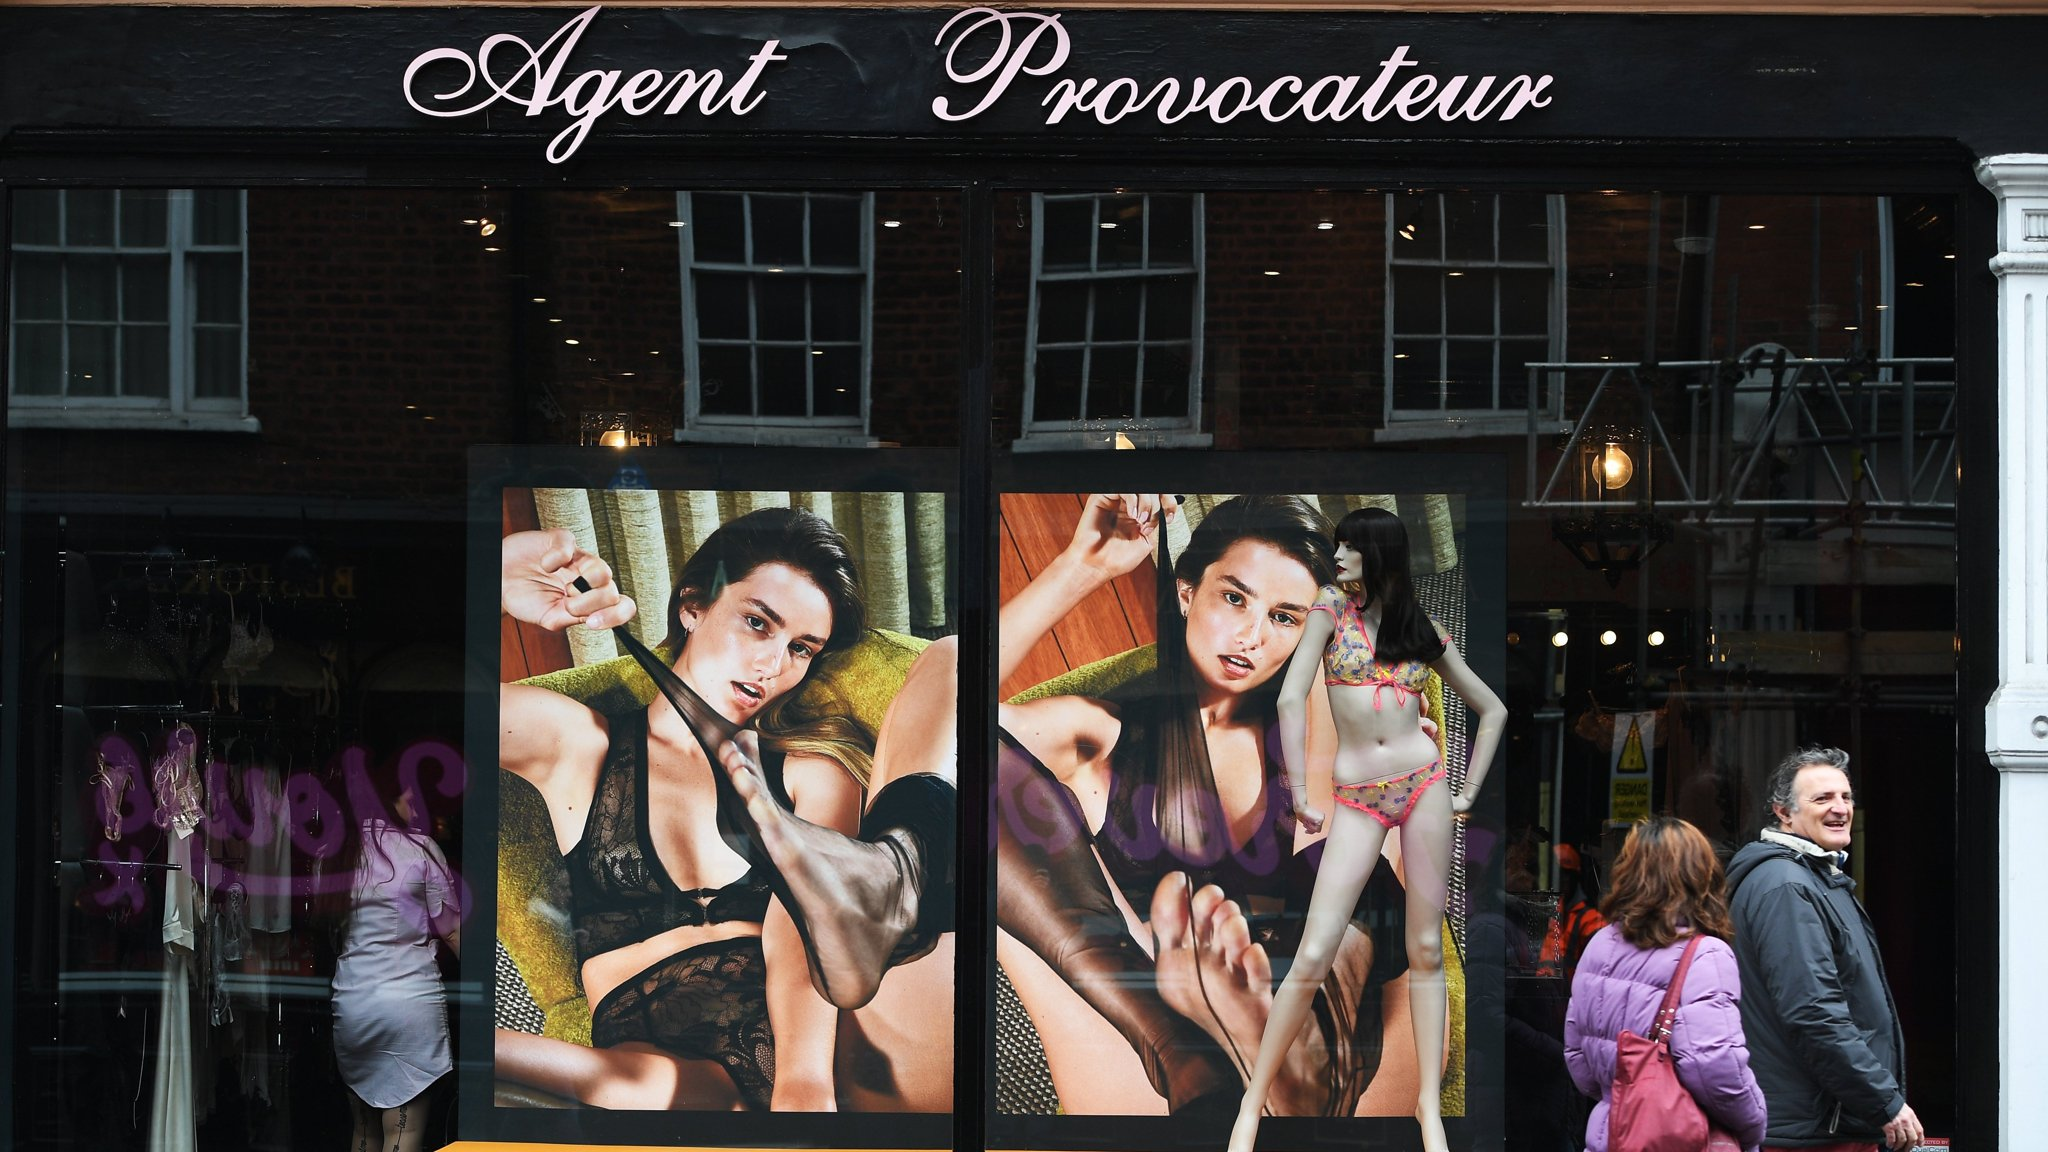 4ae286e06b Agent Provocateur shows why founders should move on